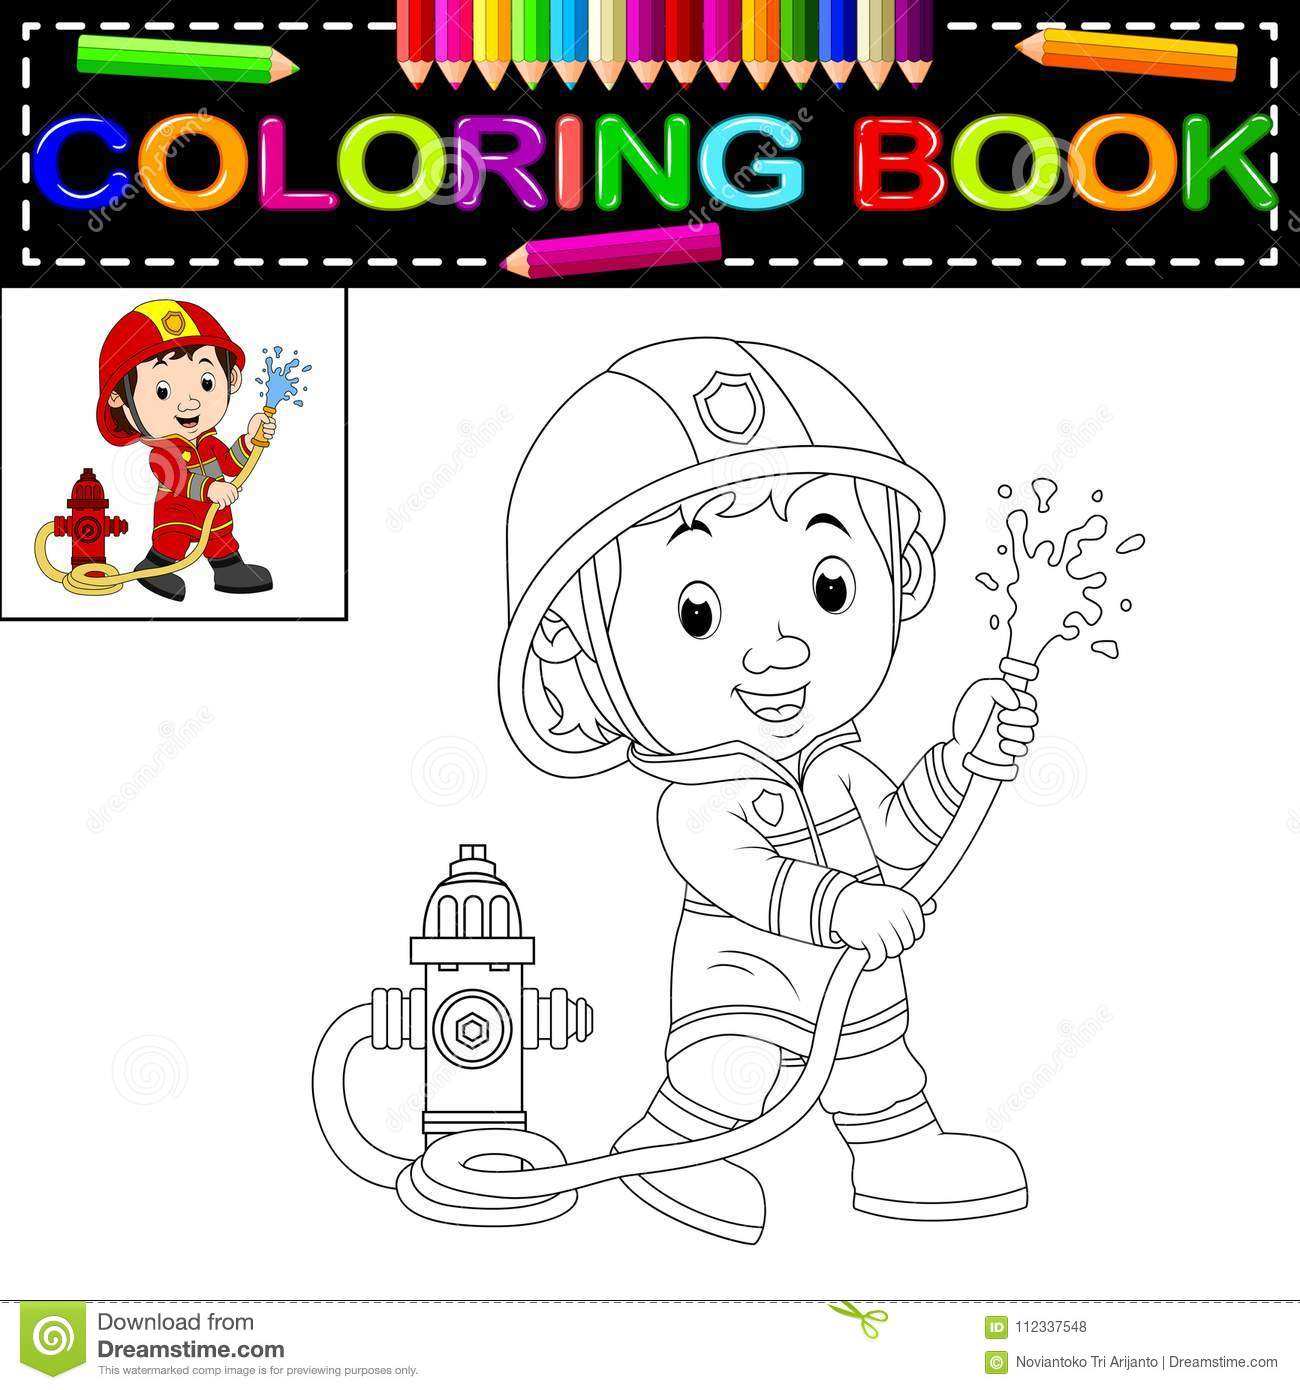 Firefighter coloring book stock vector. Illustration of cartoon ...